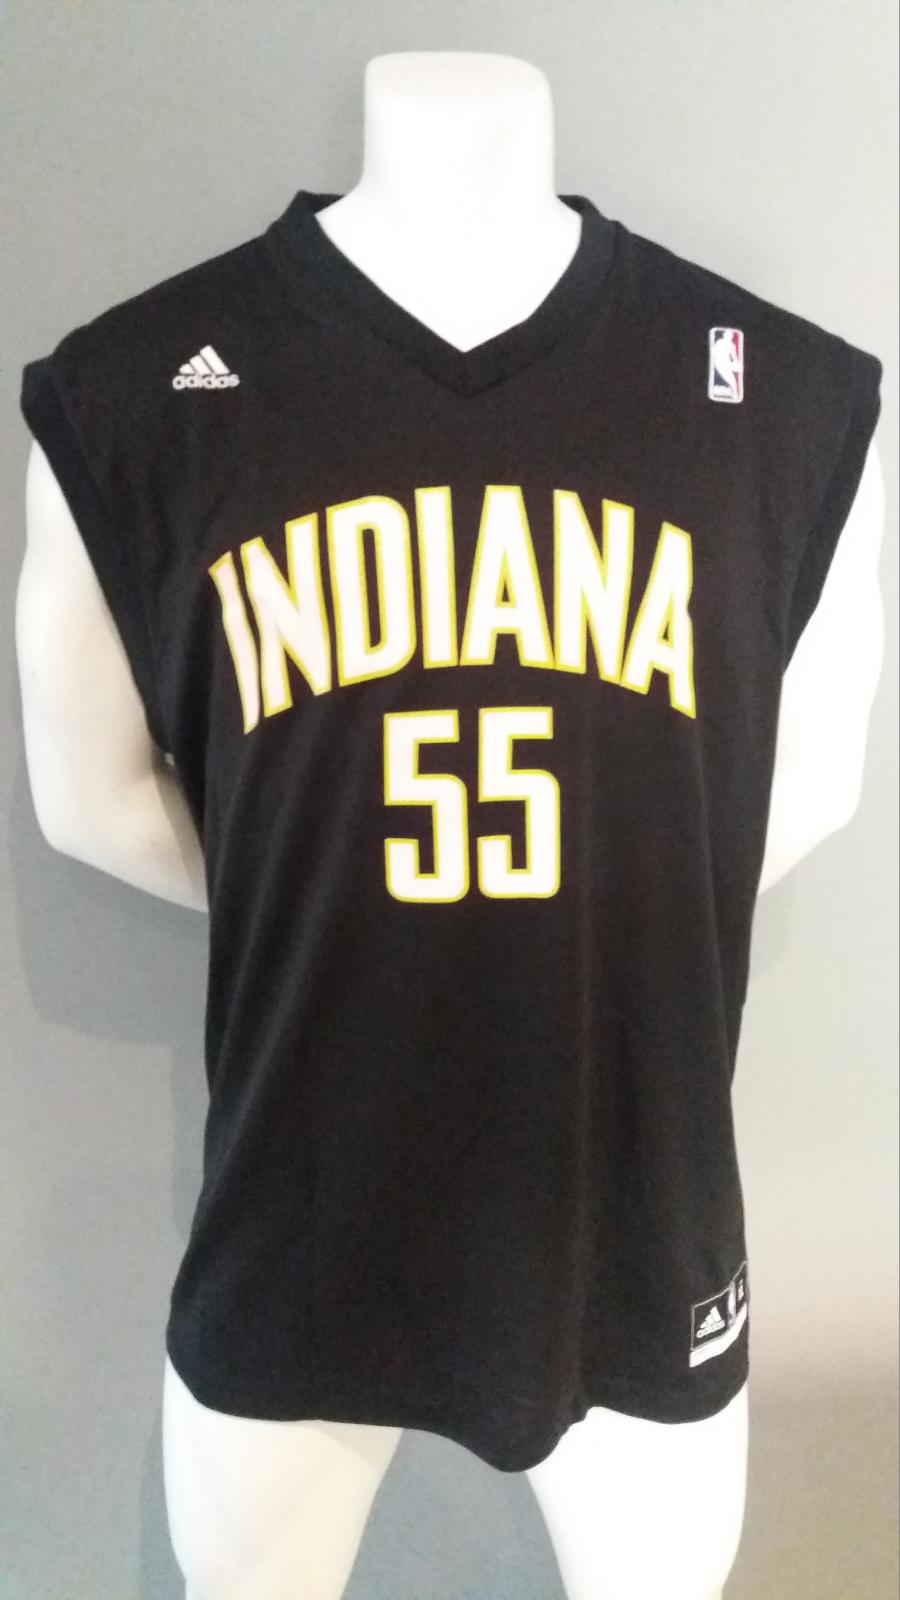 Jersey - Replica - Hombre - Roy Hibbert - Indiana Pacers - Road - Adidas